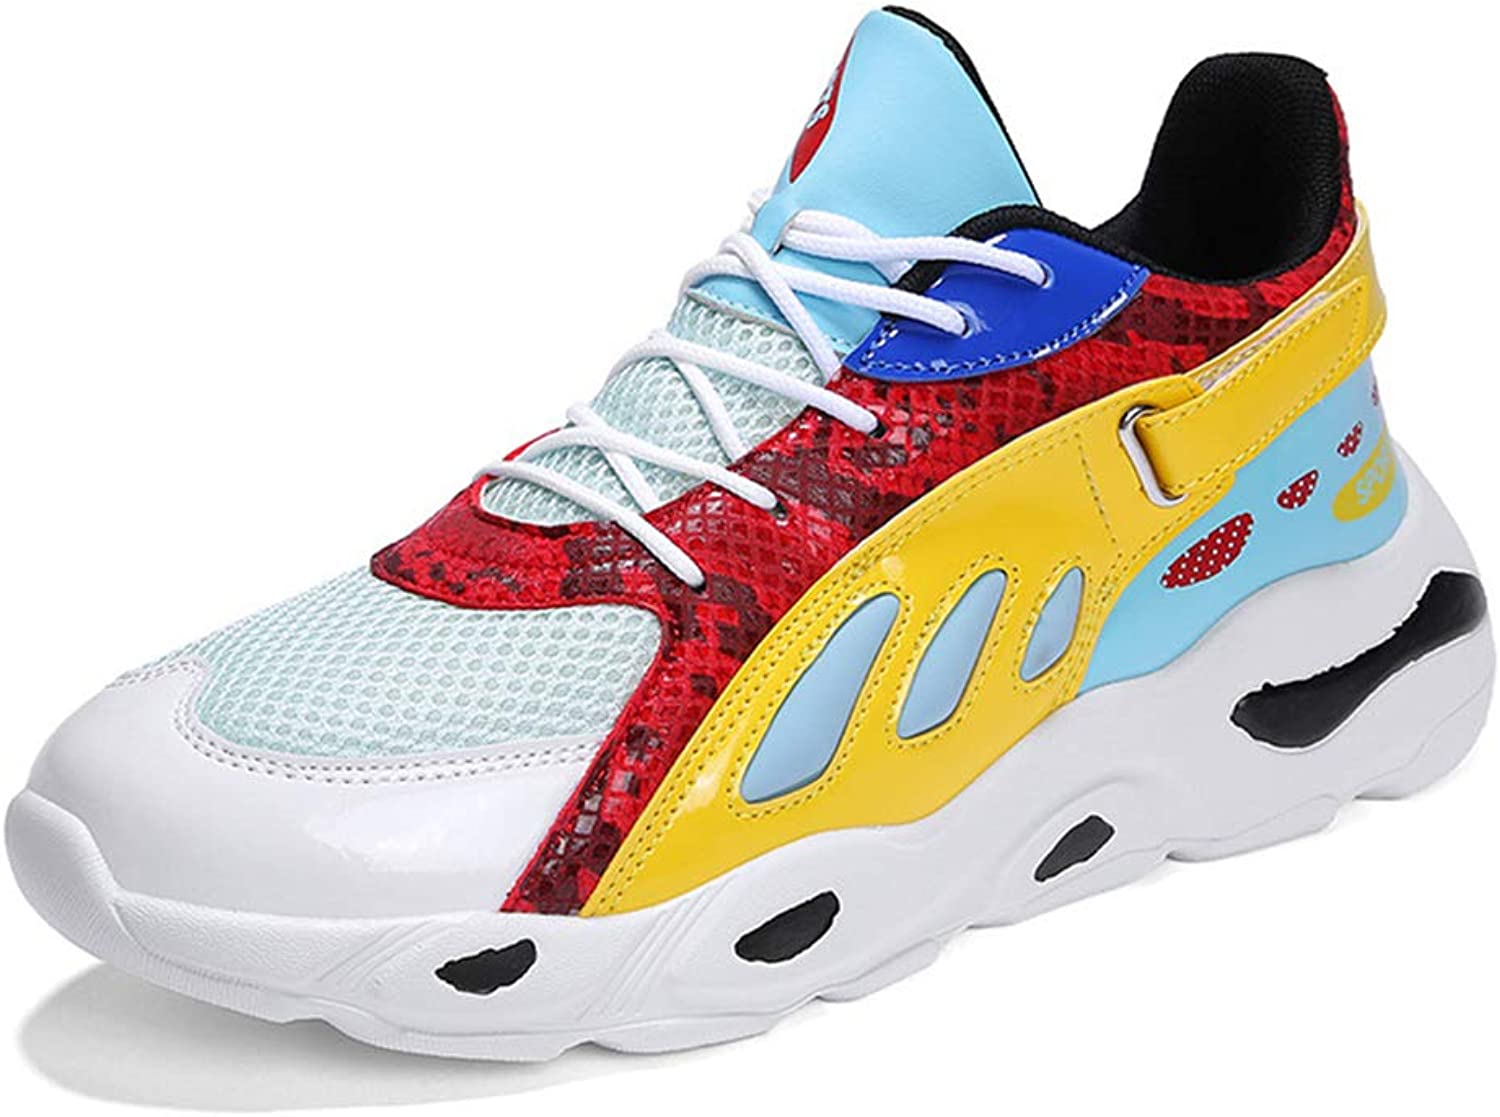 LH Autumn and winter couple butterfly shoes men's fashion trend casual sports shoes women's outdoor comfortable running shoes,40